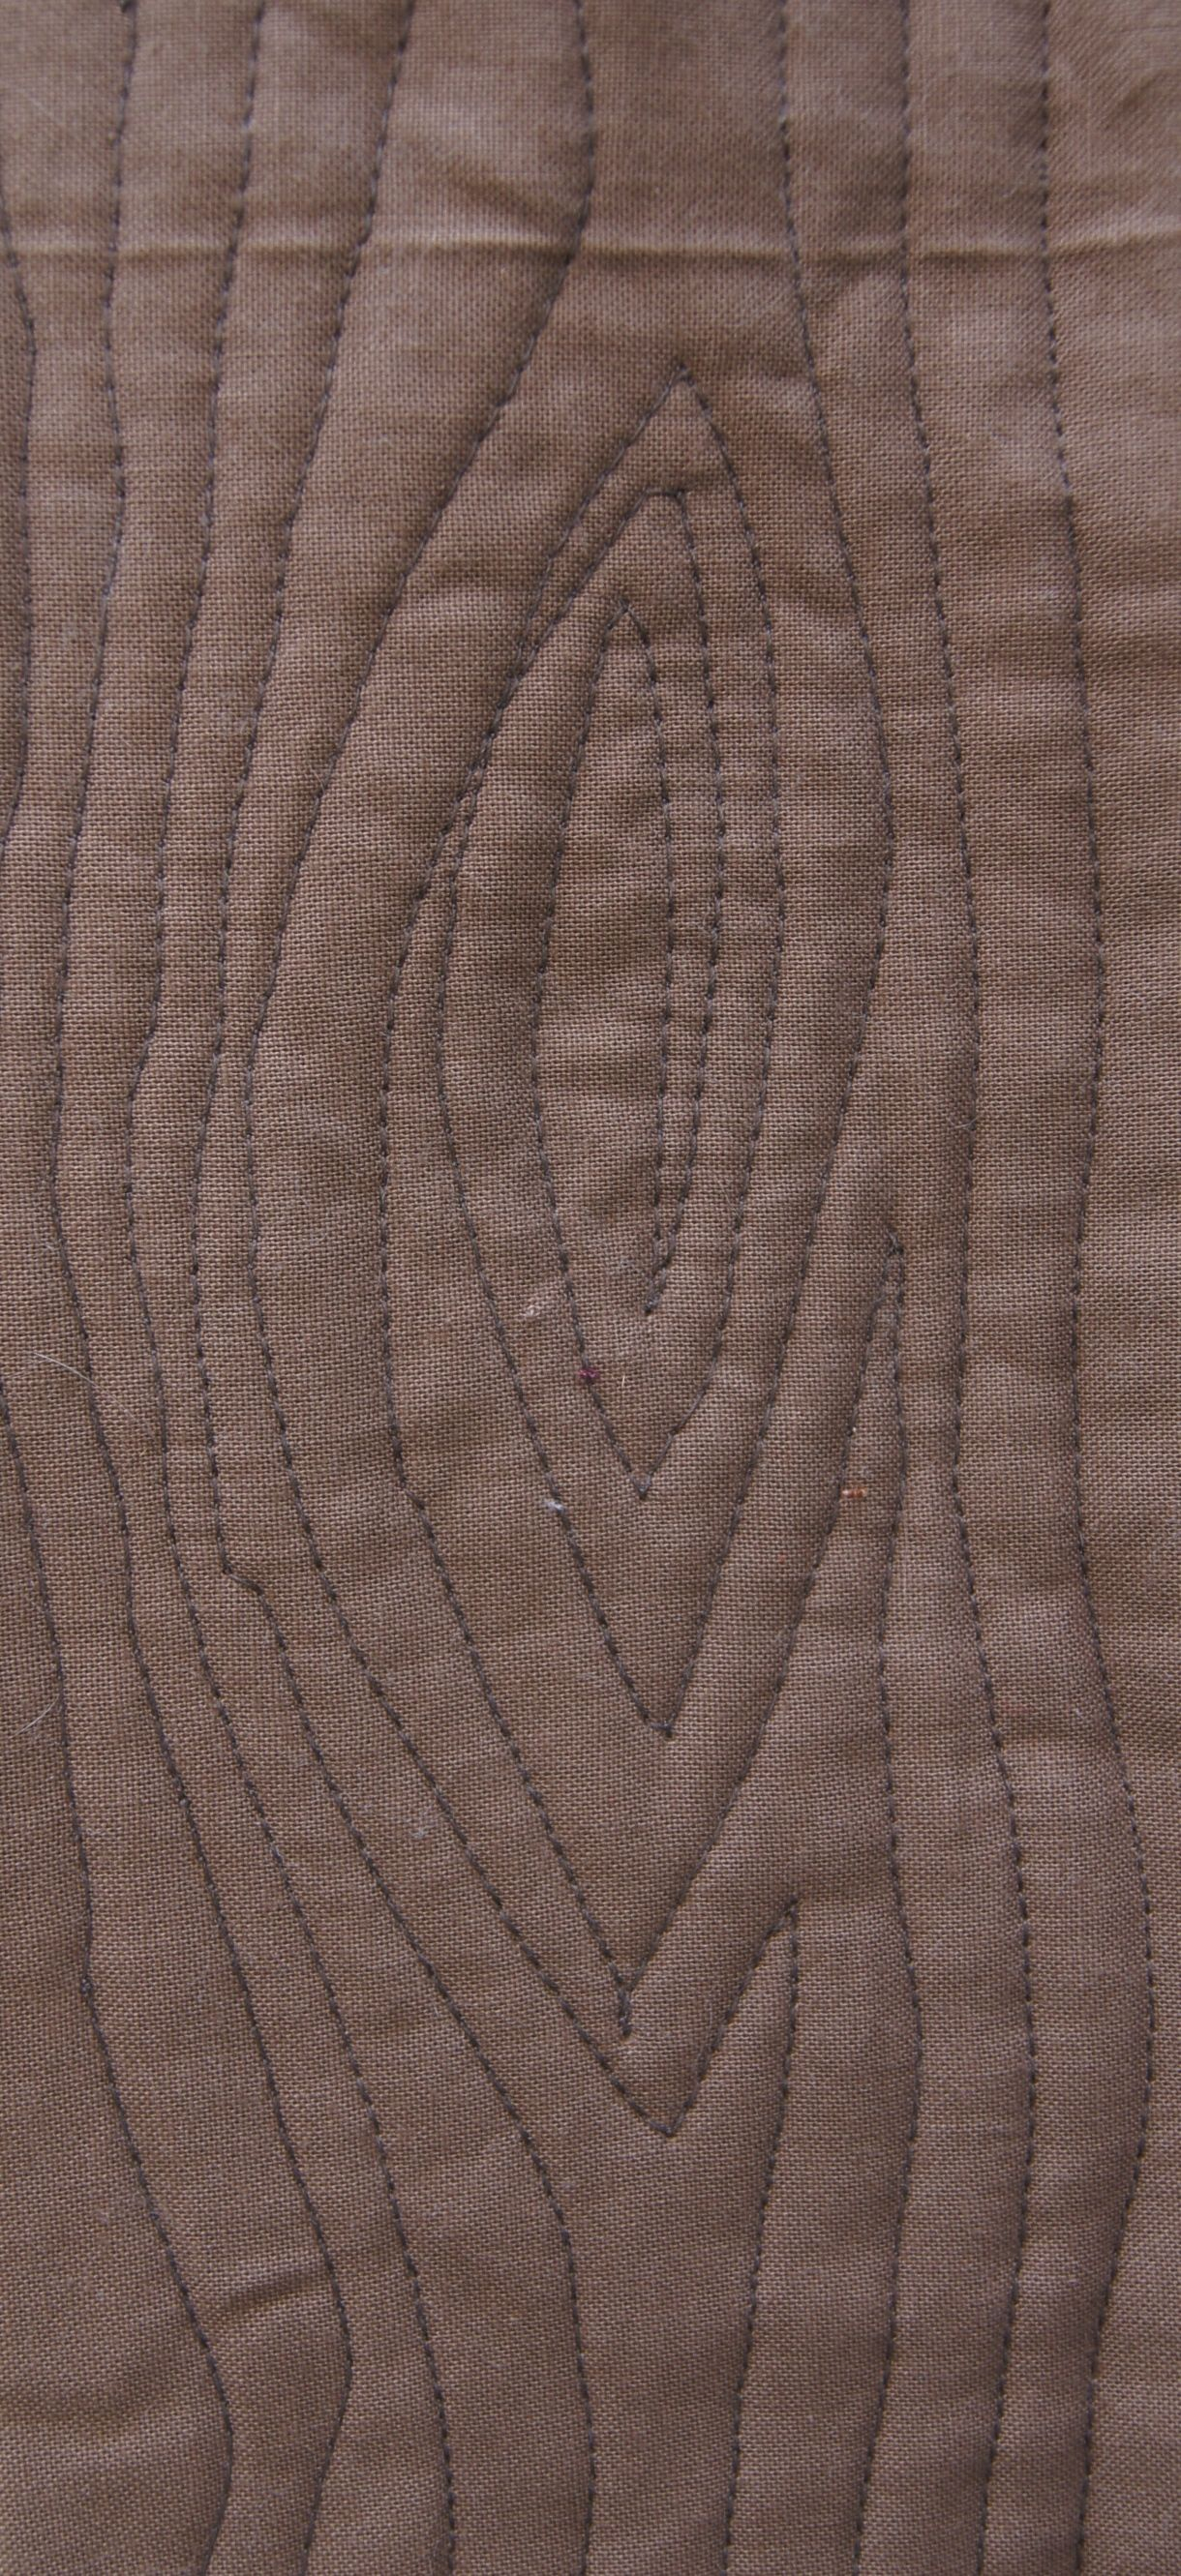 Wood grain quilting with a walking foot